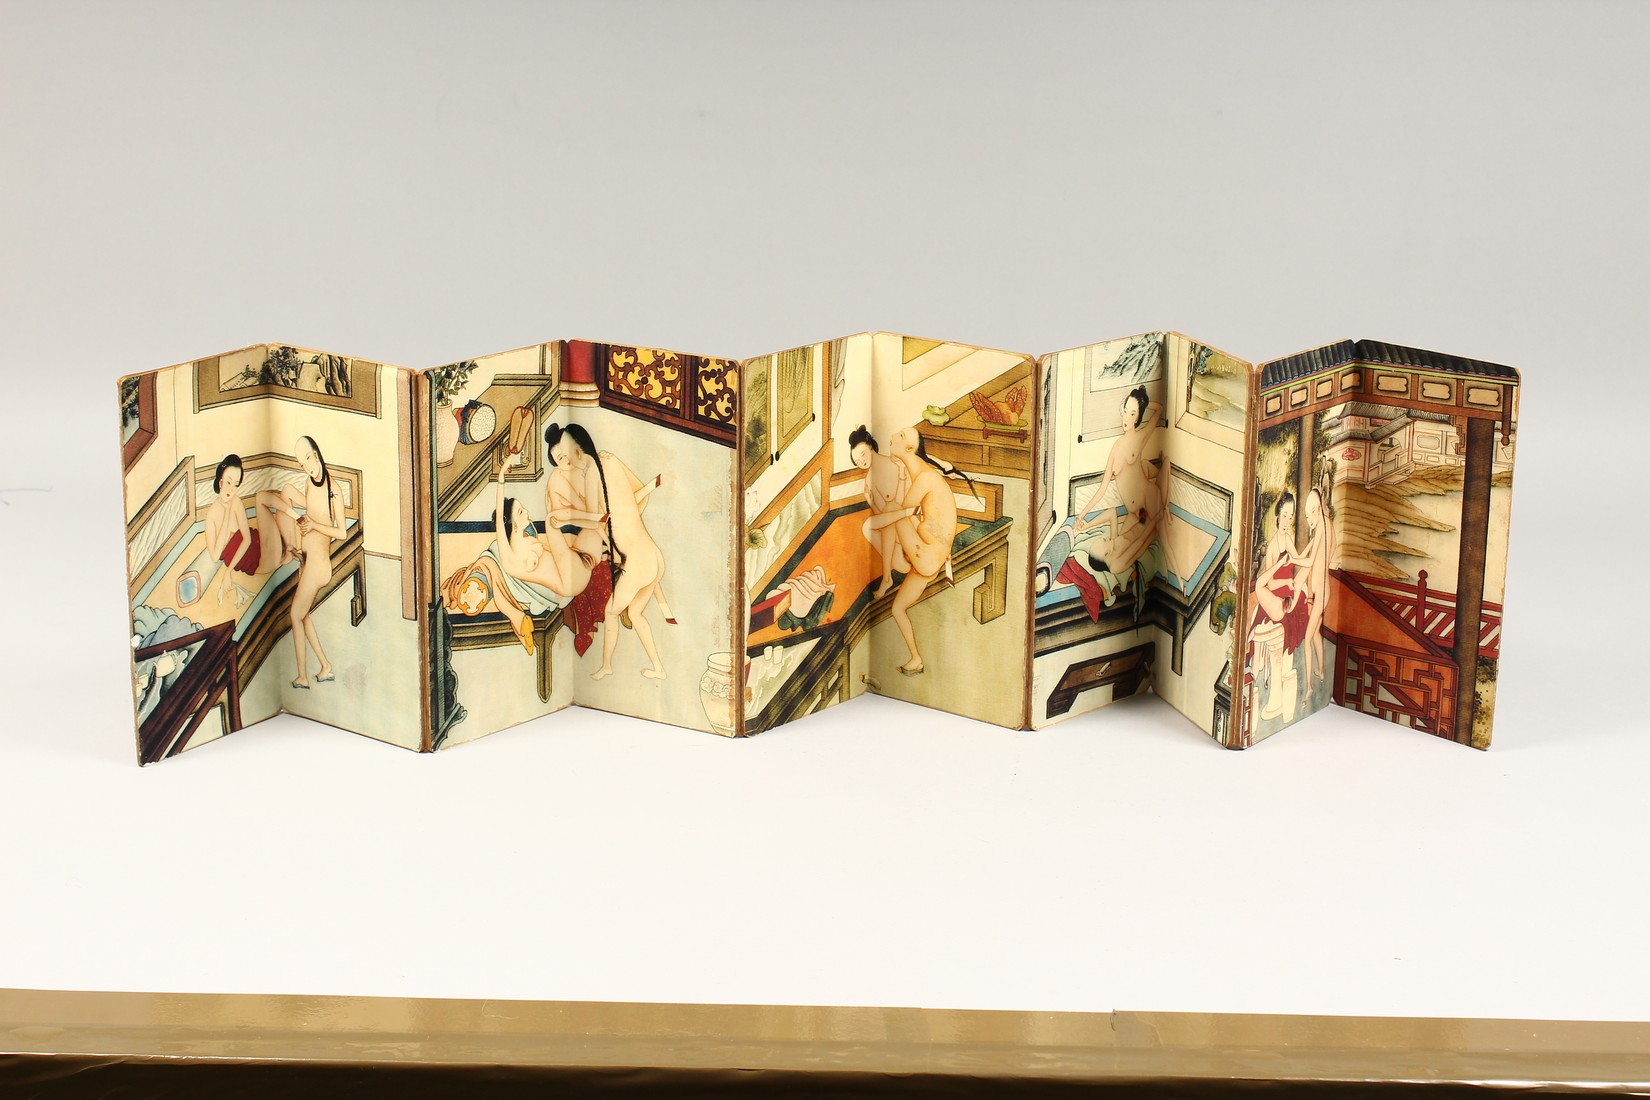 AN EROTIC CHINESE FOLDING BOOK. - Image 2 of 9